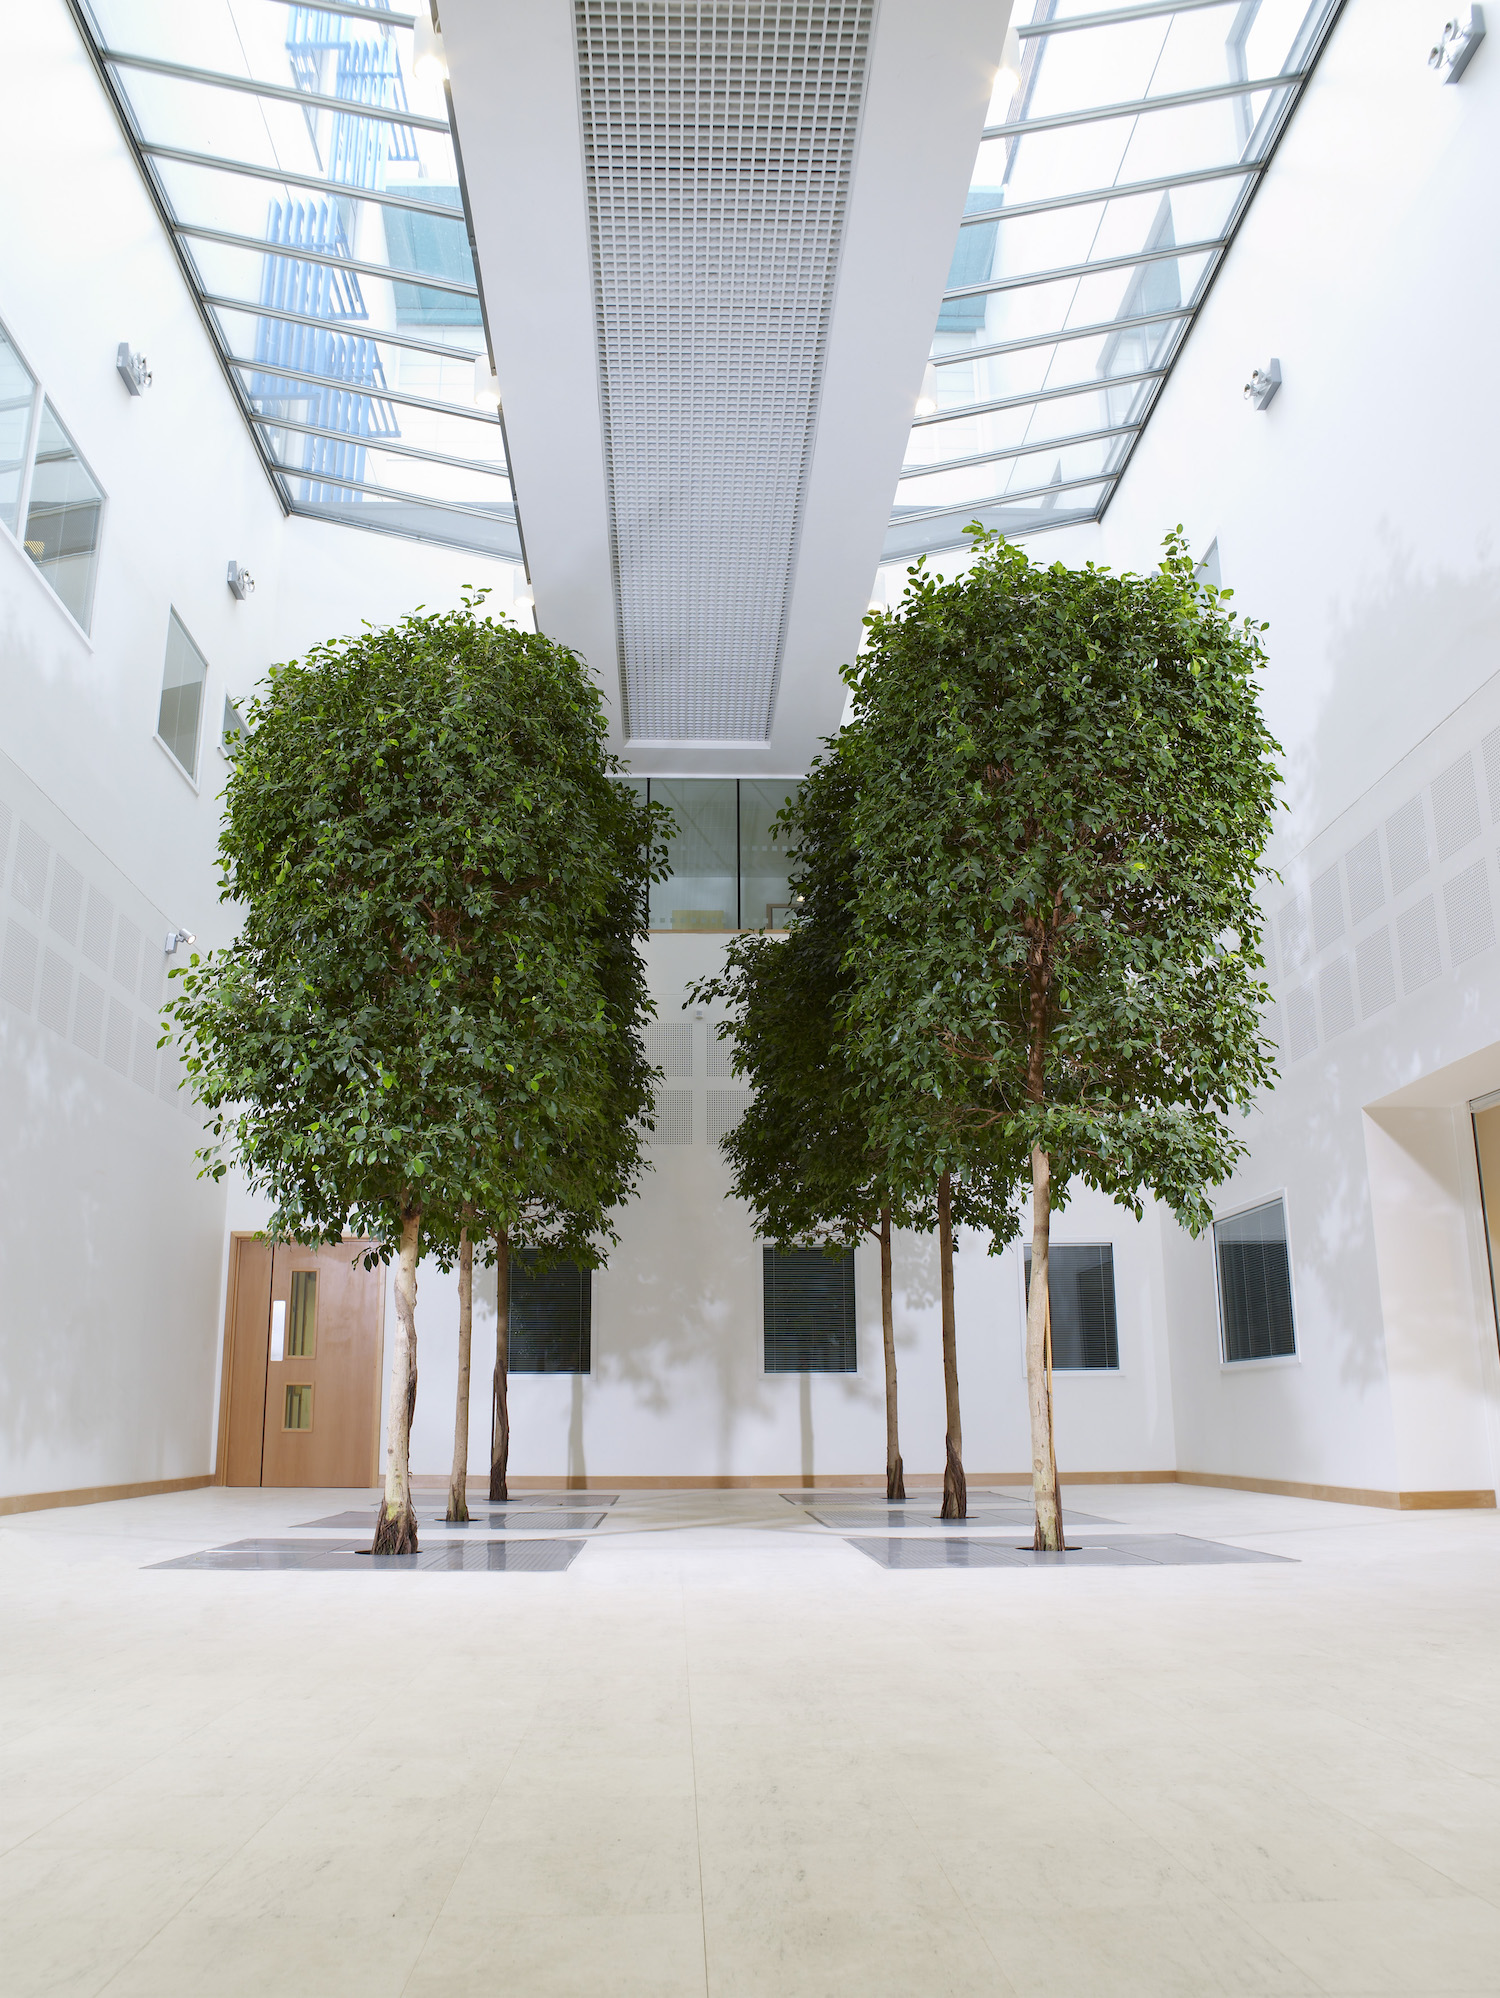 bristol-royal-infirmary-hospital-plantcare-interior-plants-trees-bristol-image-1